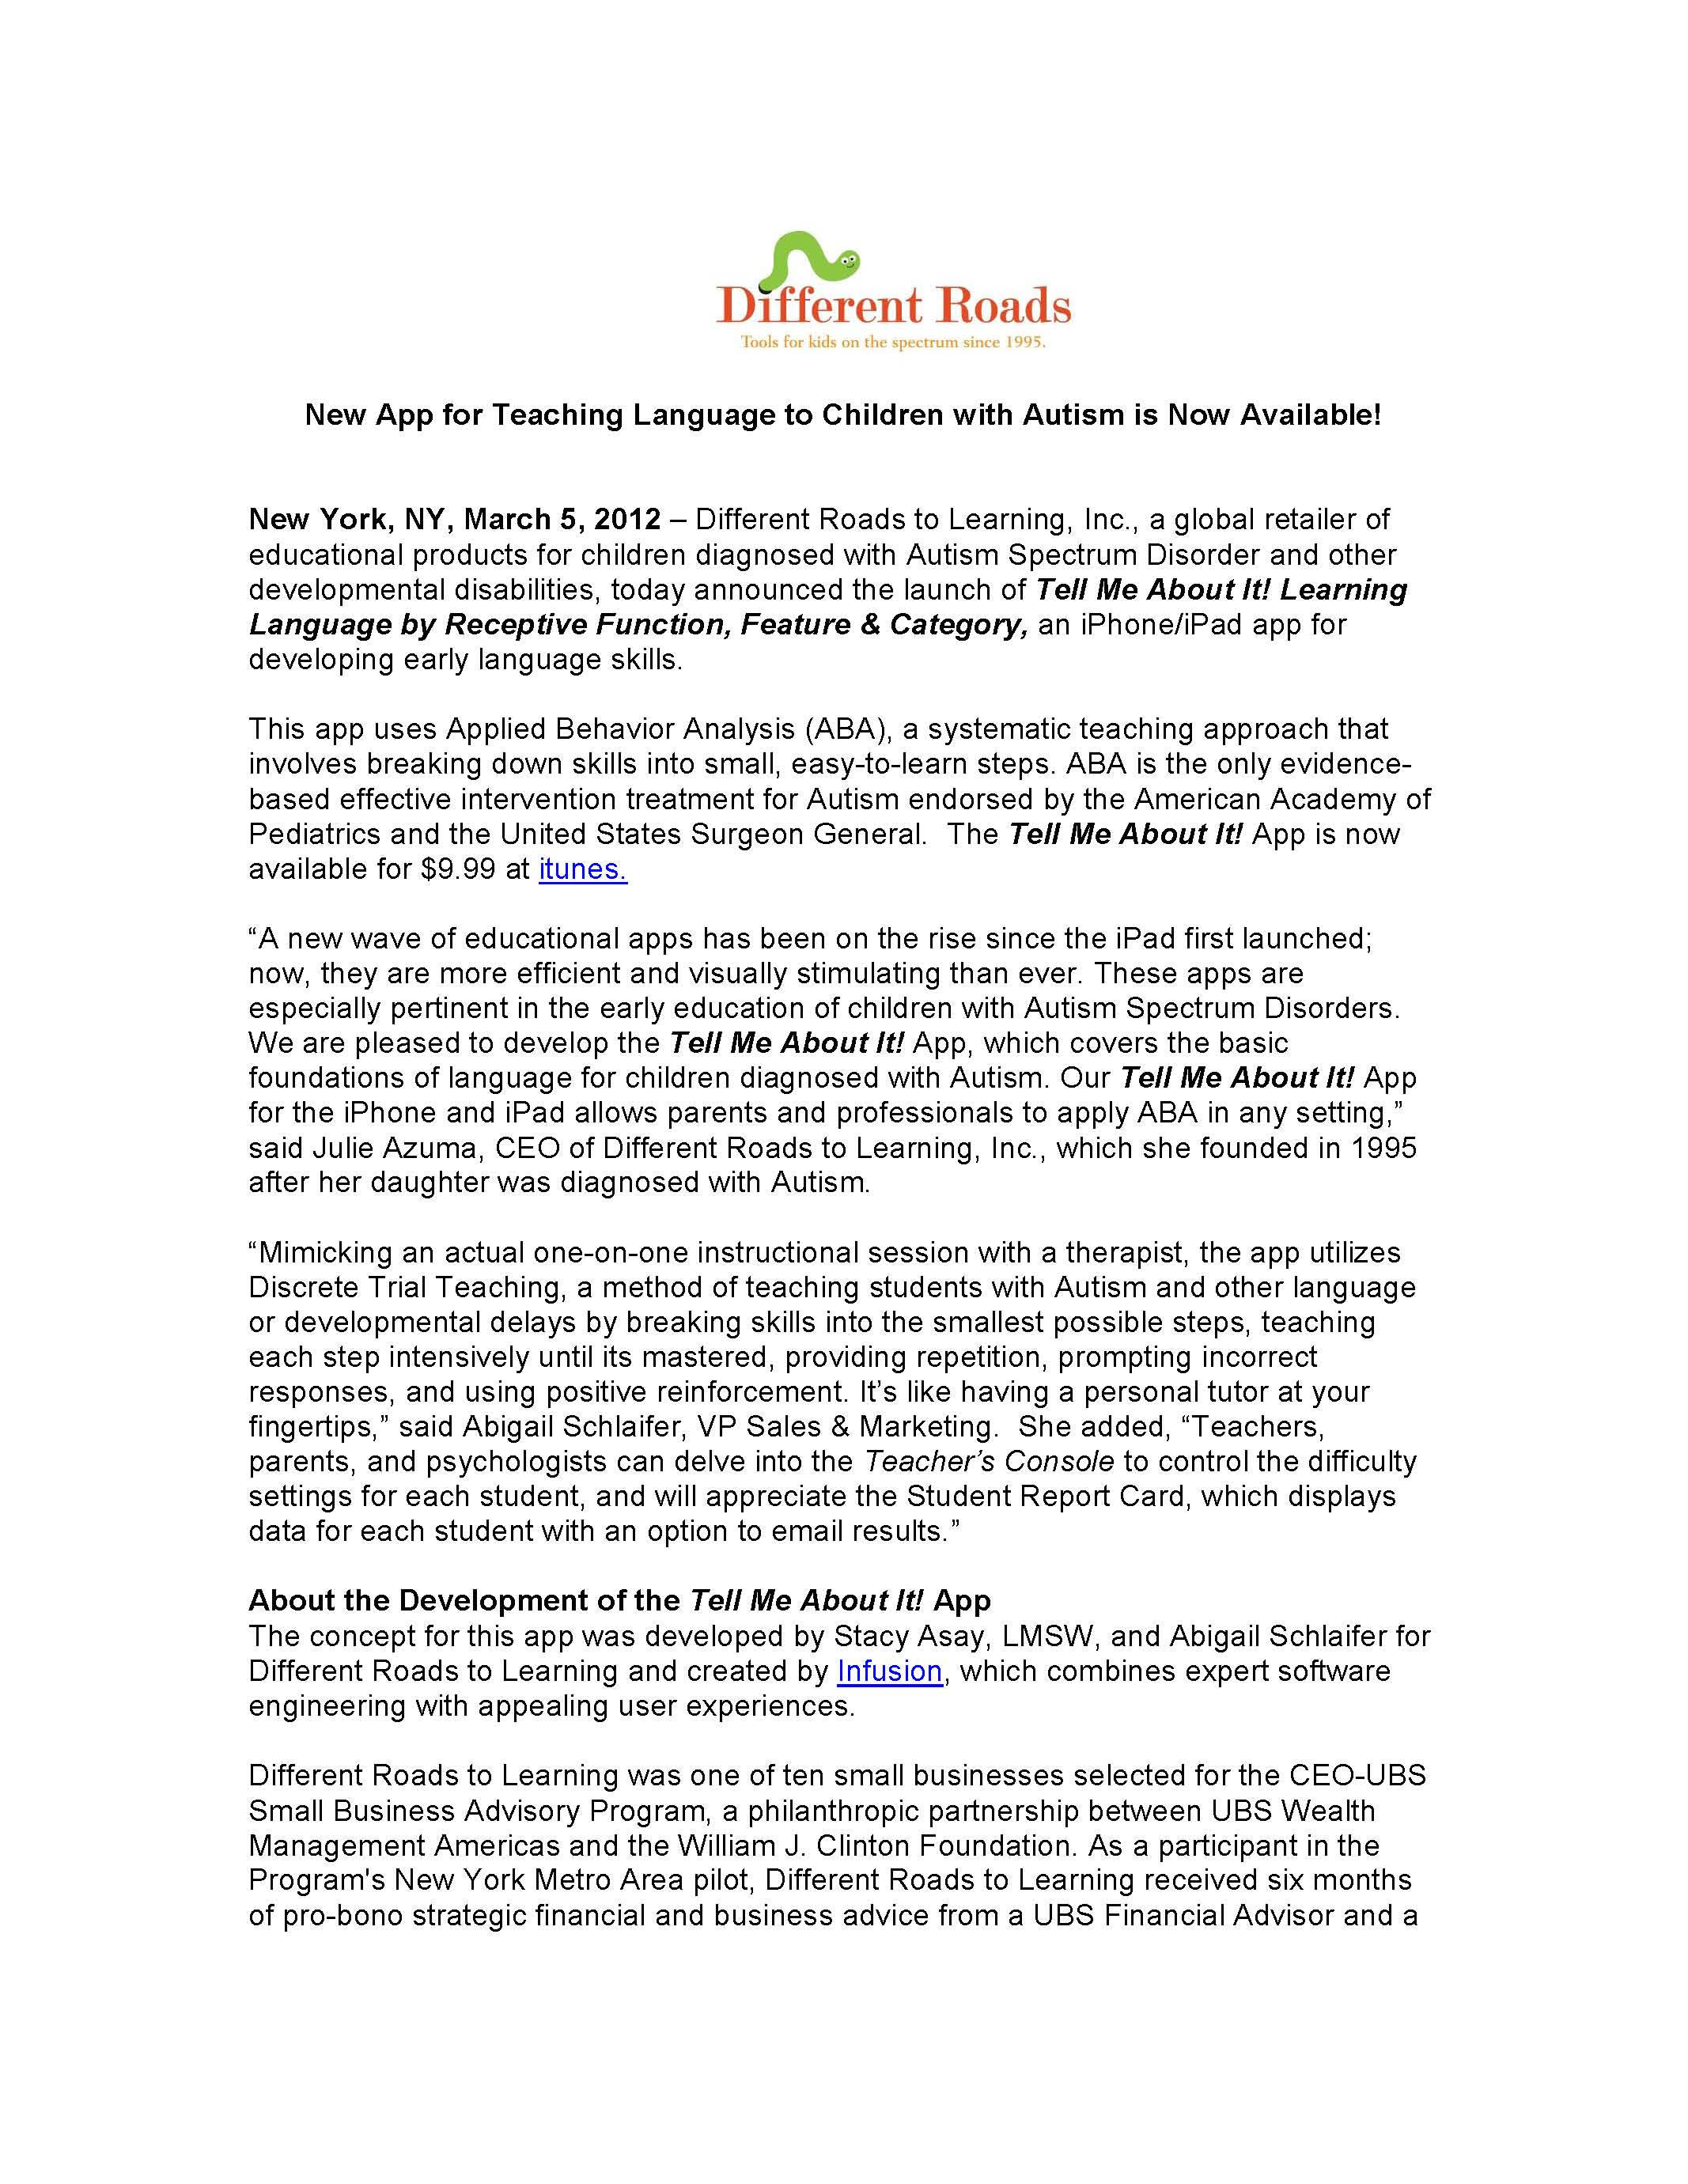 tell me about it app archives different roads to learning tell me about it app press release page 1